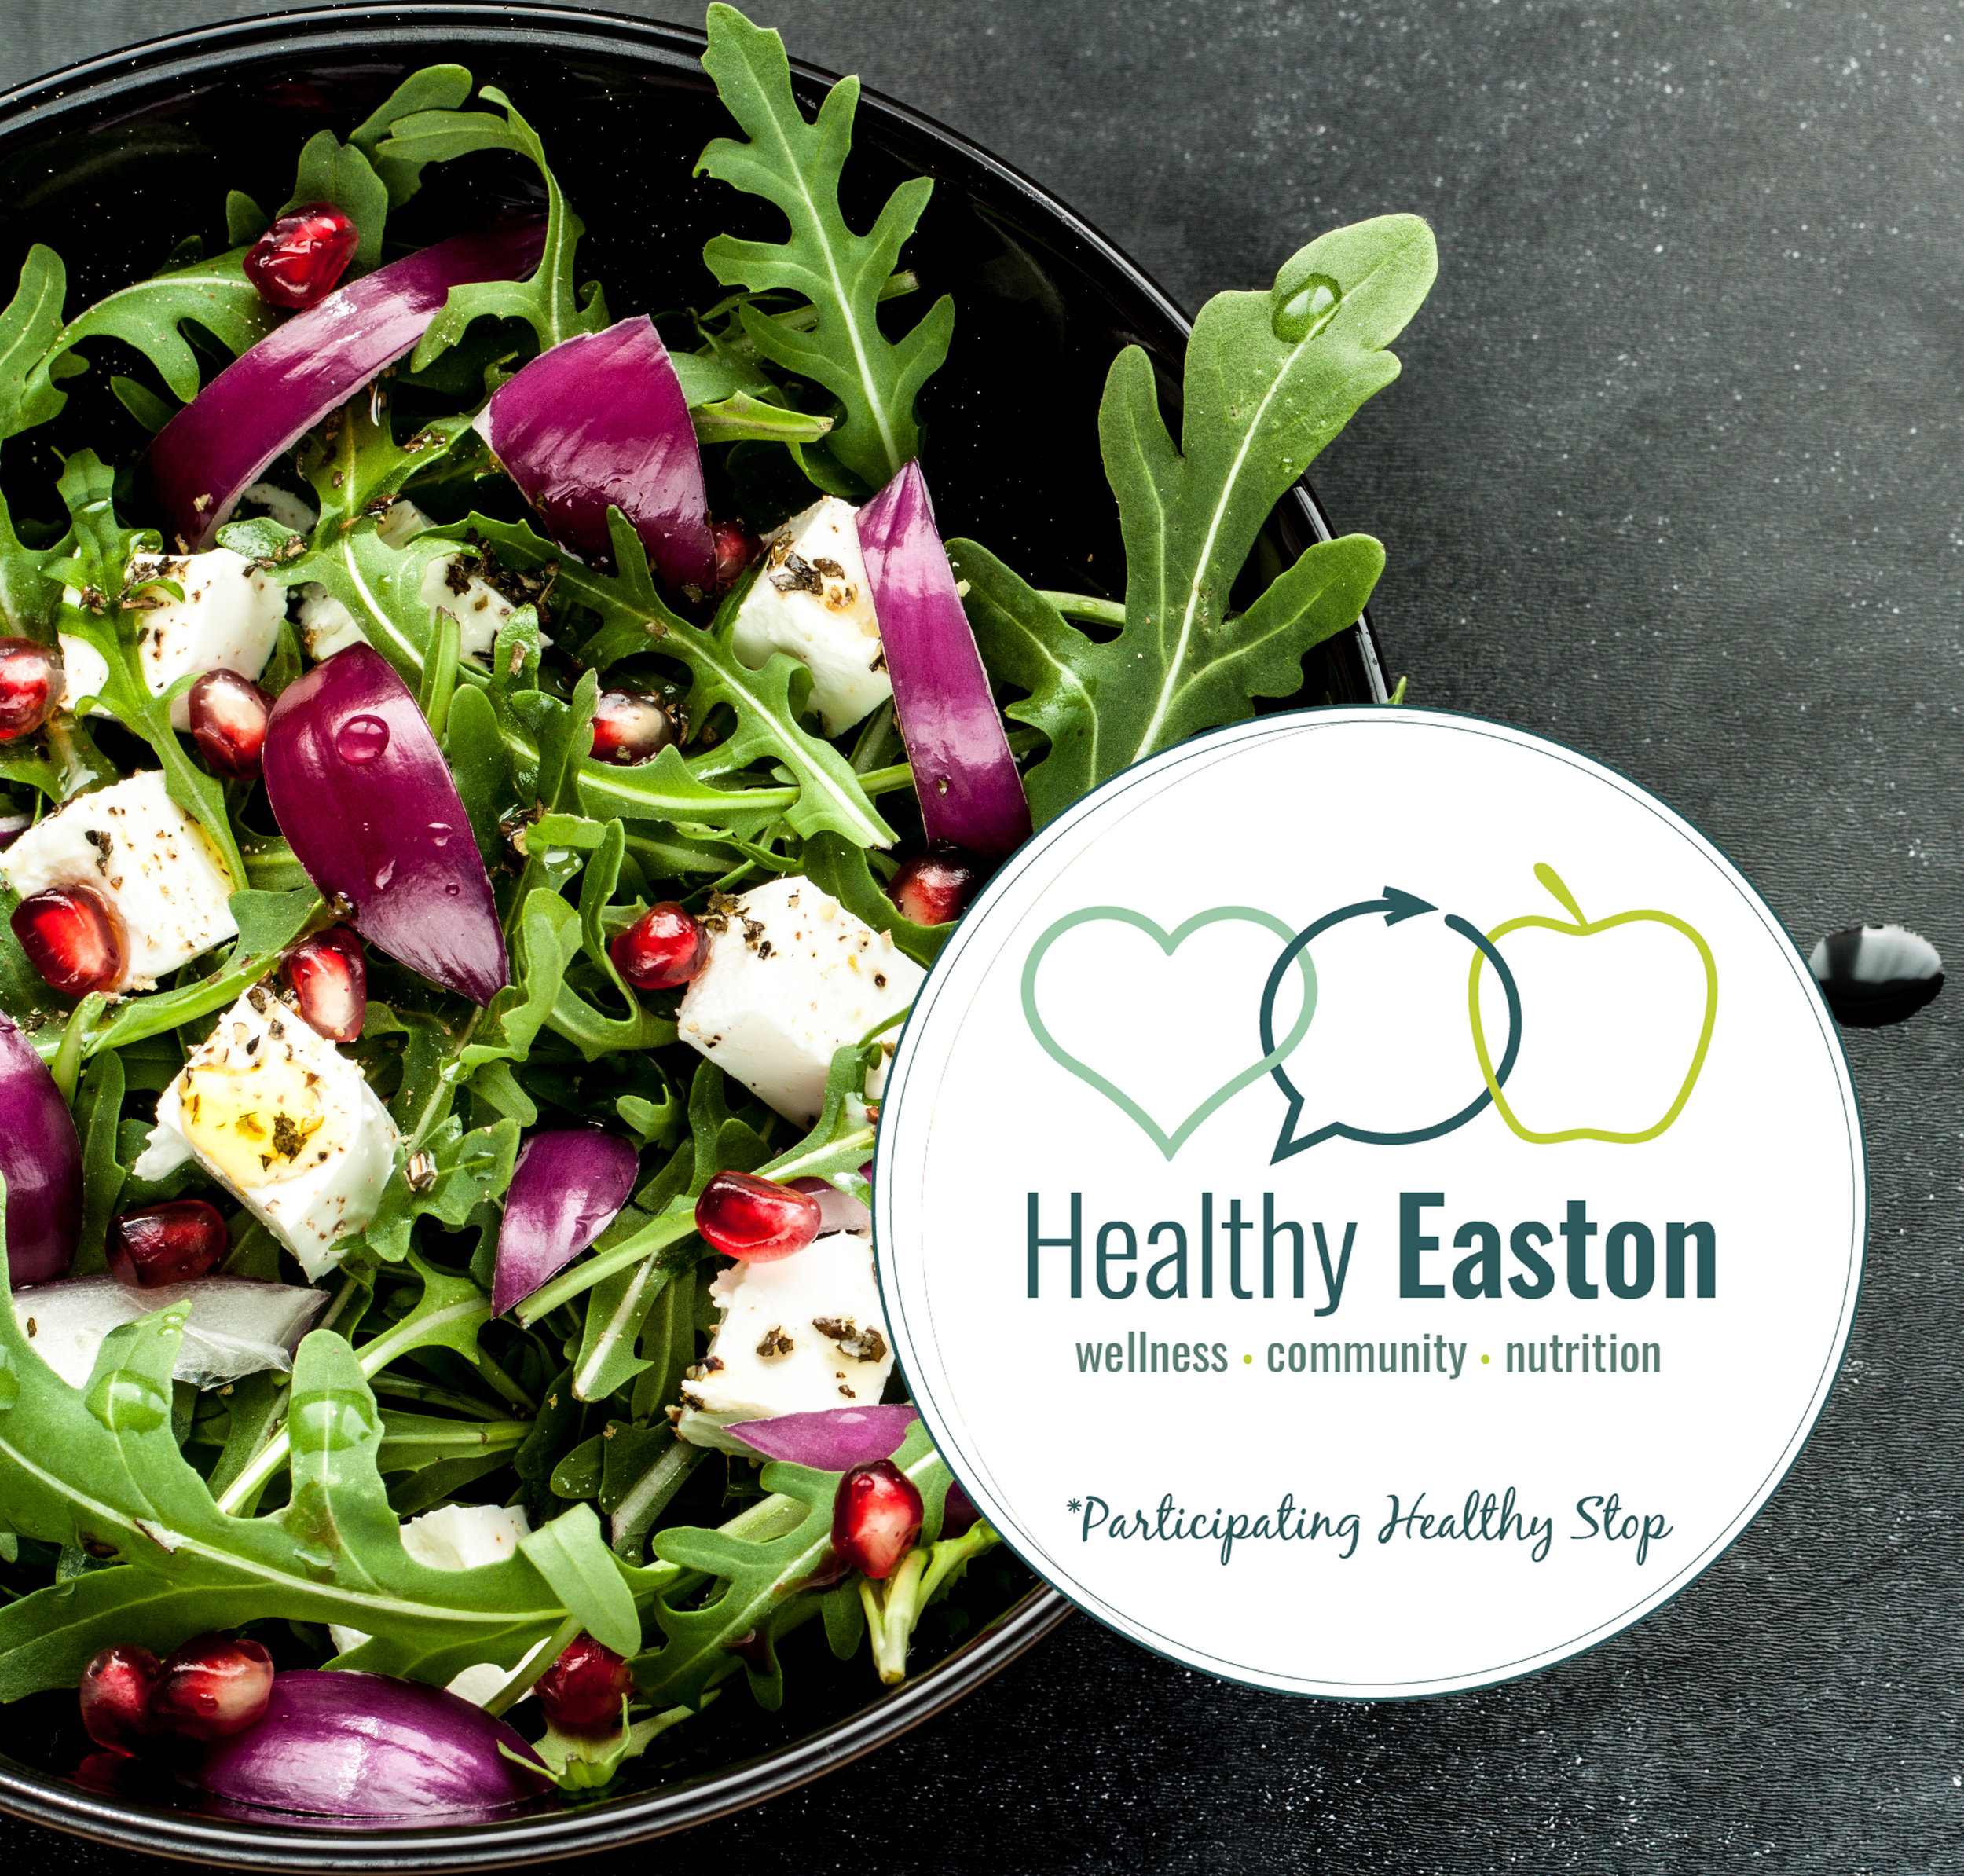 Healthy Stops & Restaurants - WHAT ARE THEY?Healthy Stops are Healthy Easton approved local businesses and restaurants that promote healthy lifestyle choices. All Healthy Stops can be recognized by a Healthy Easton-branded decal.